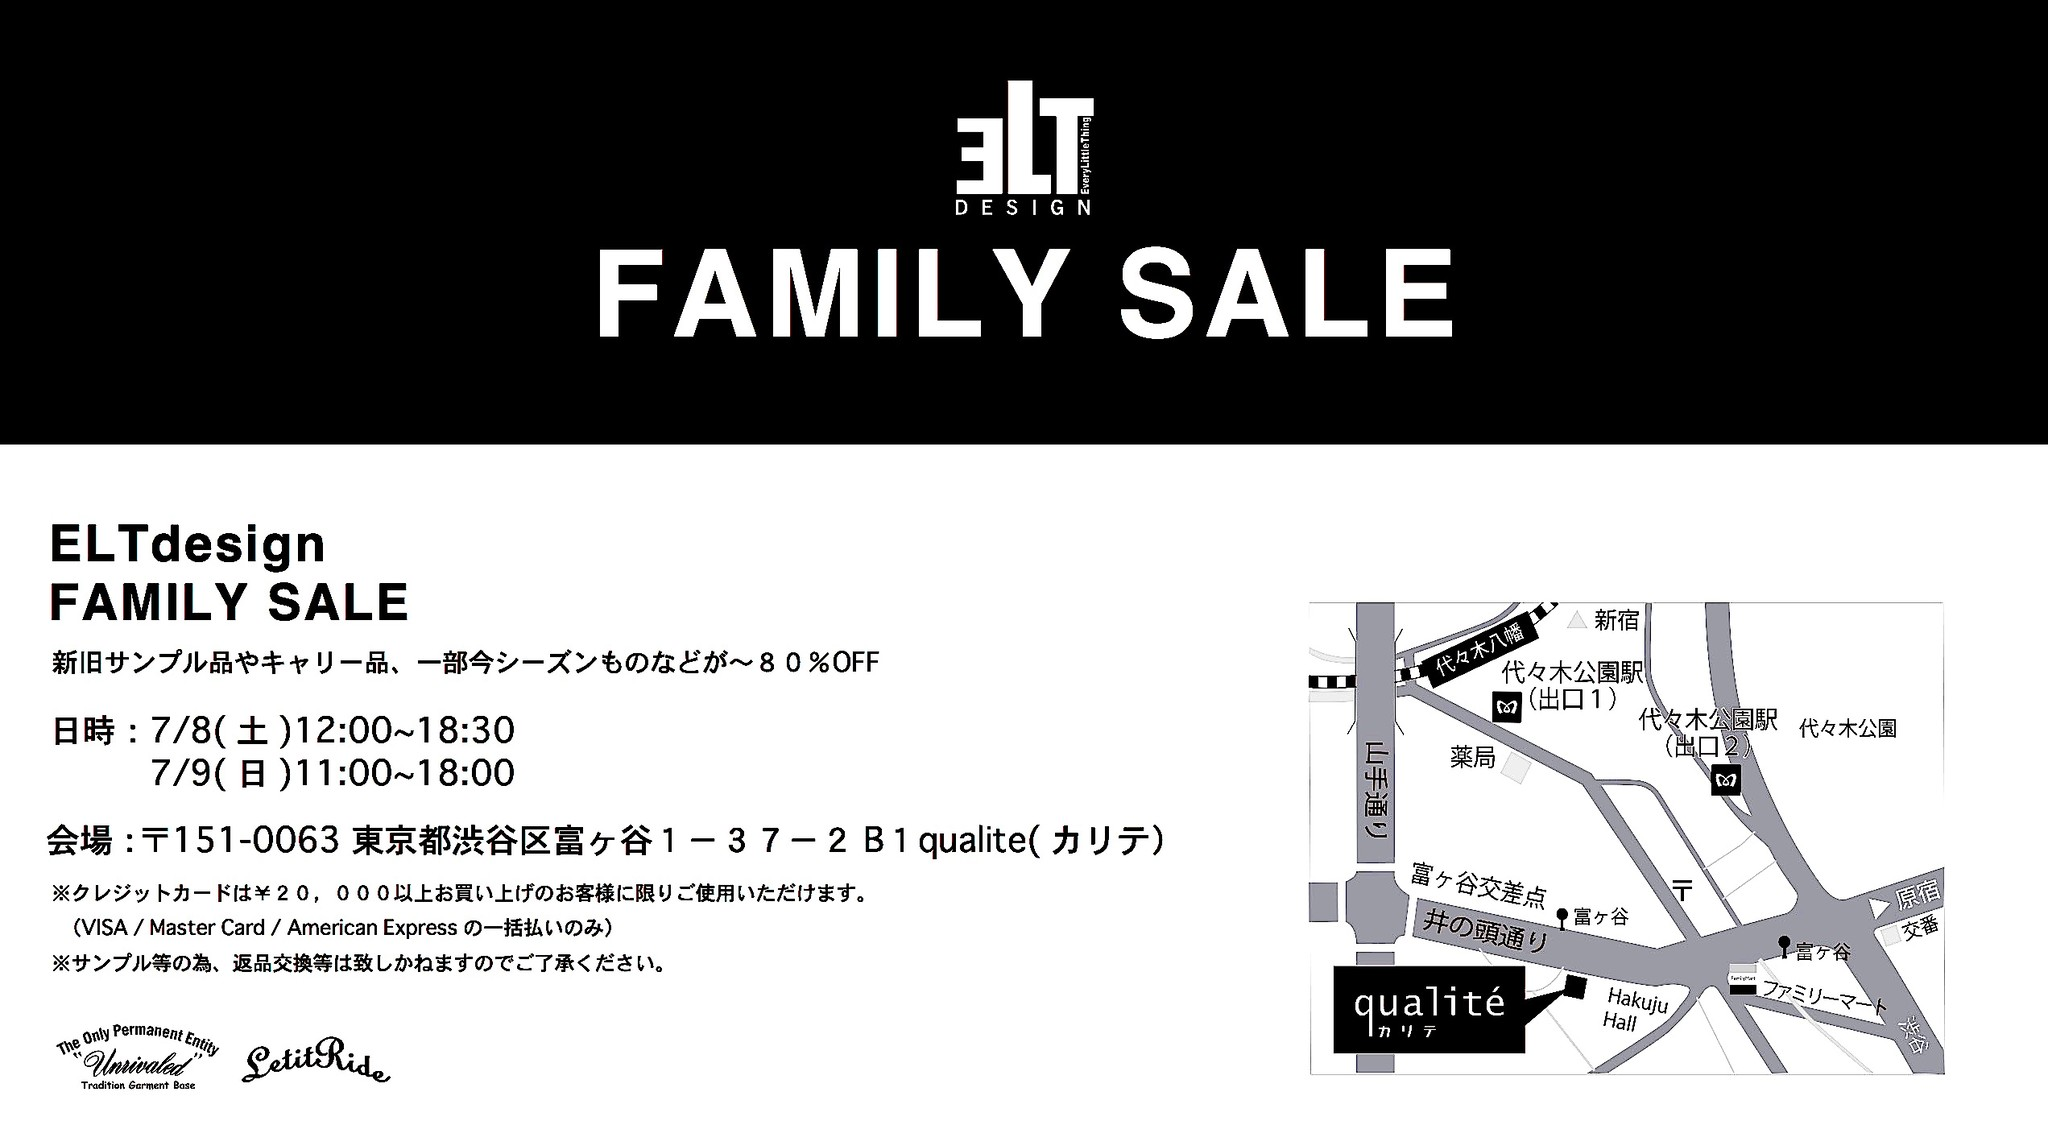 ELTdesign FAMILY SALEのお知らせ